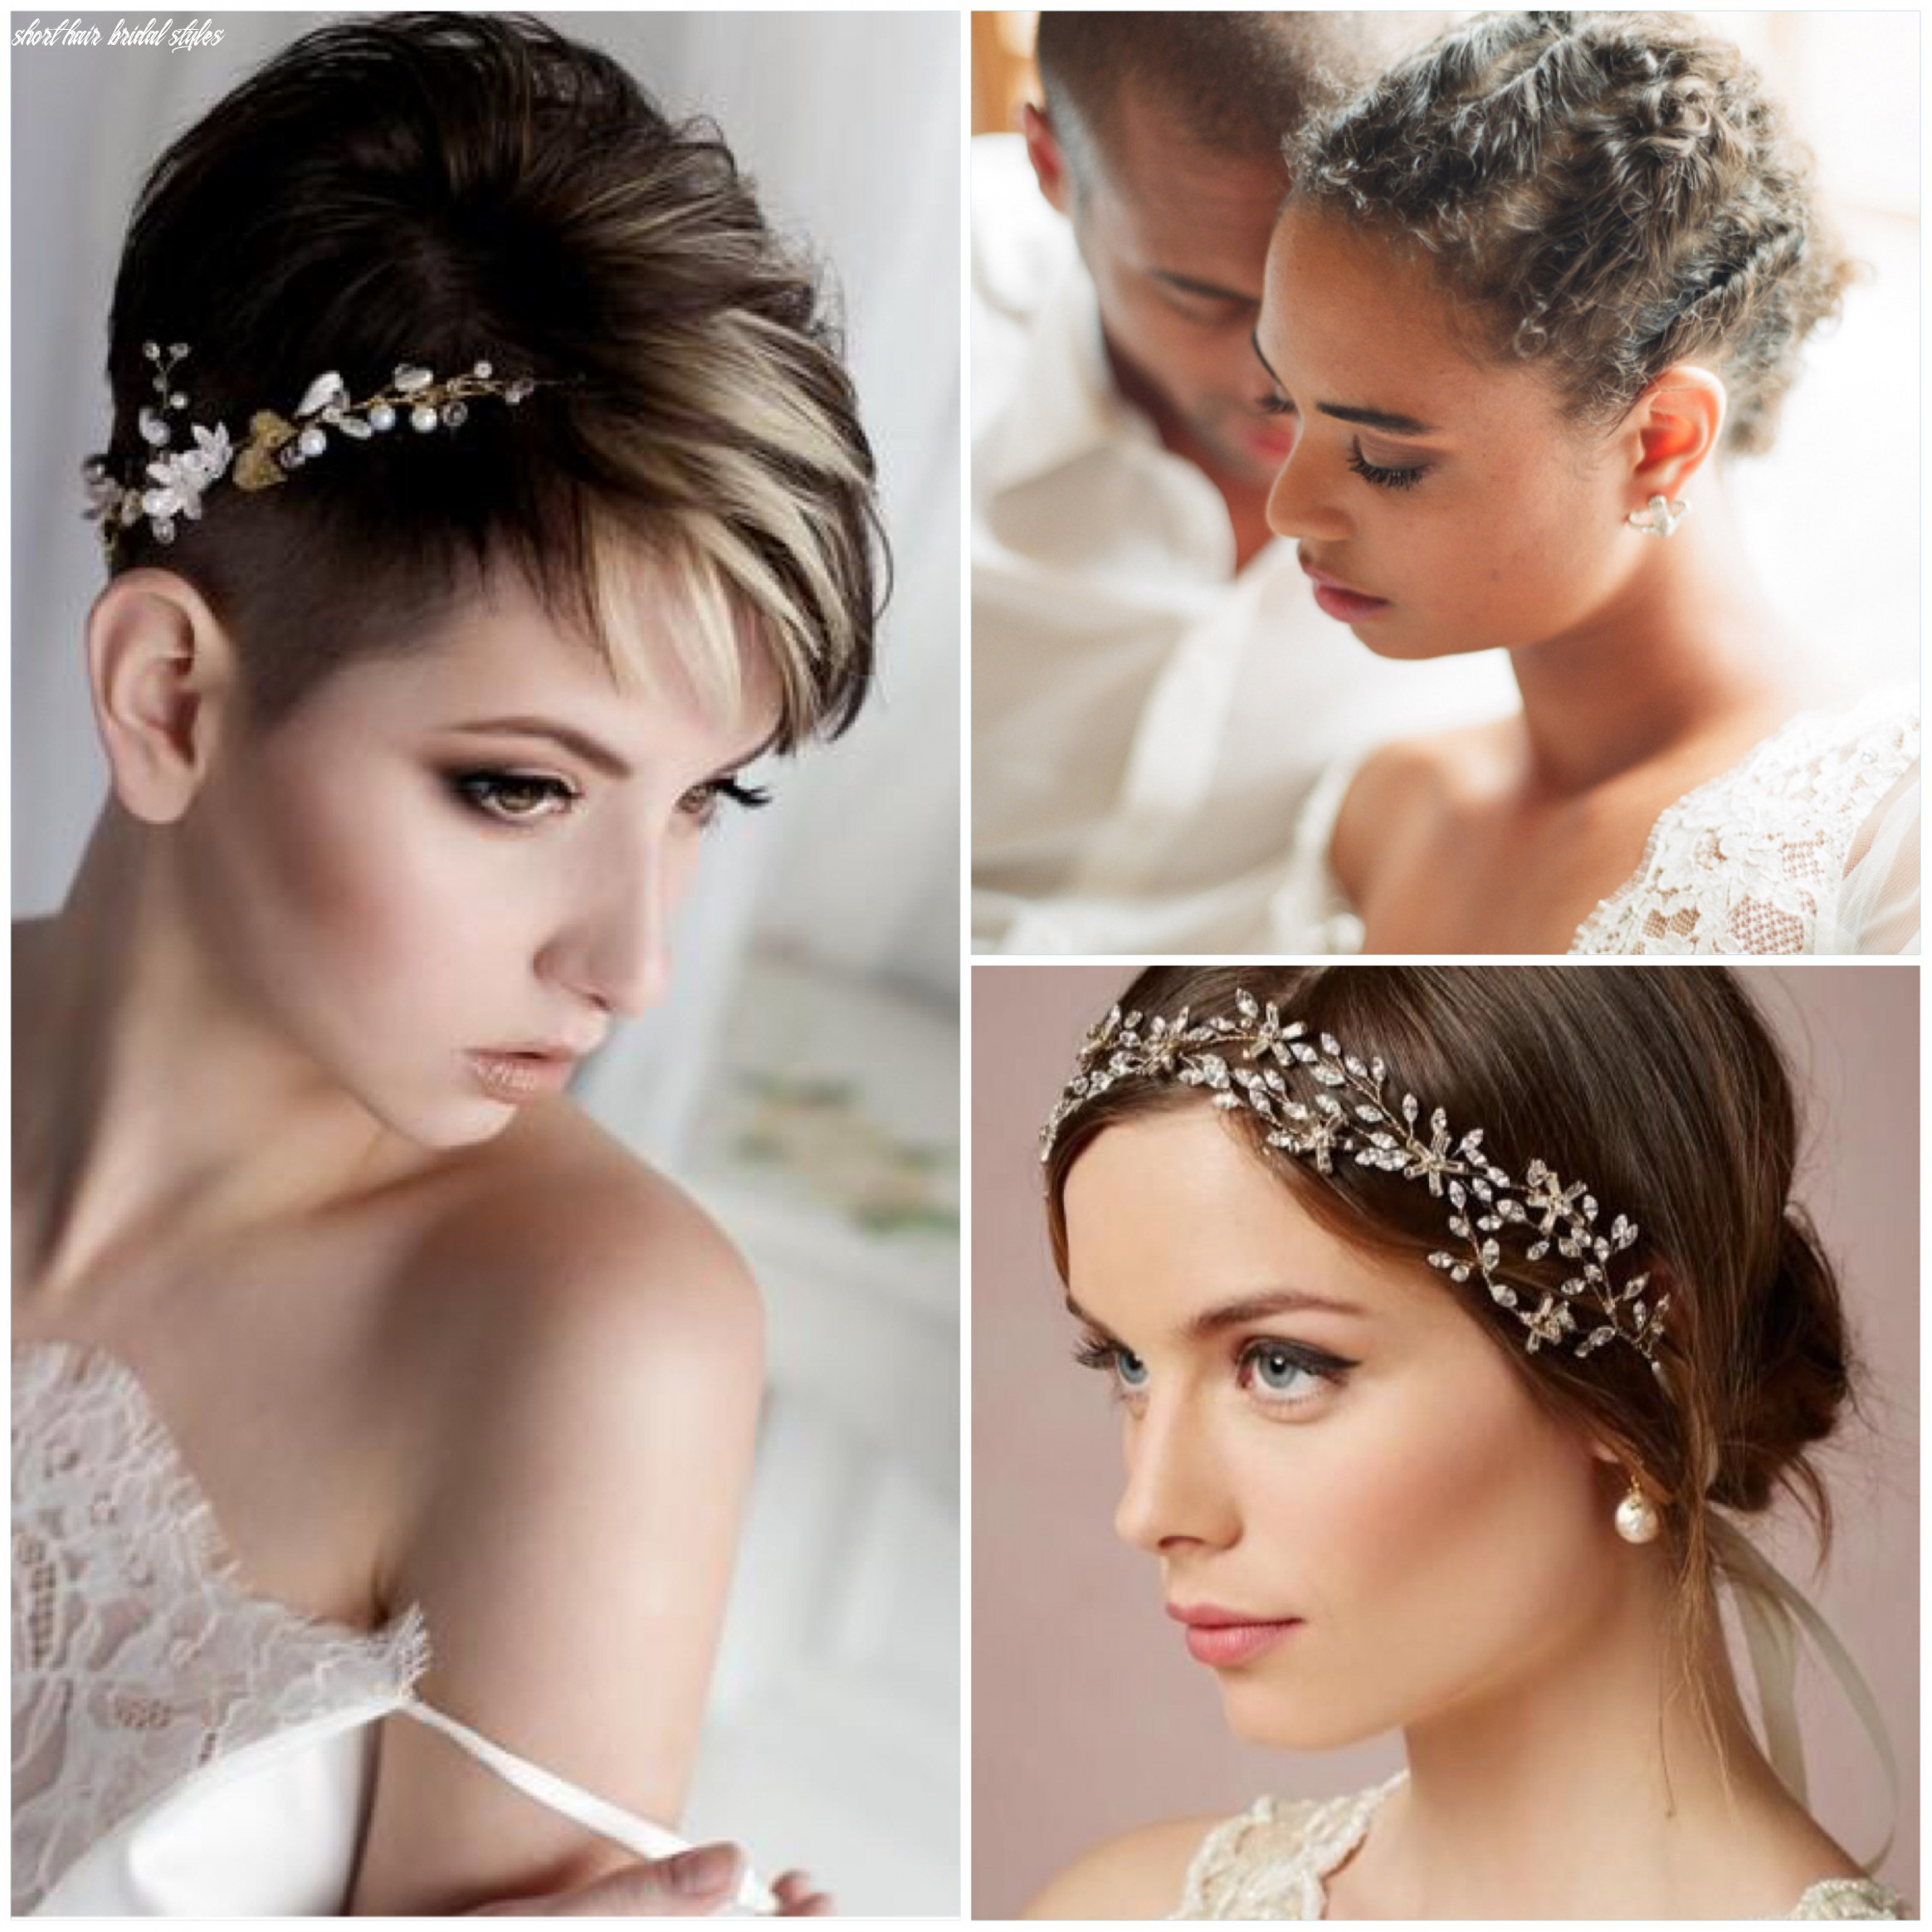 Bridal styles for shorter hair | shorter bridal hairstyles | lace